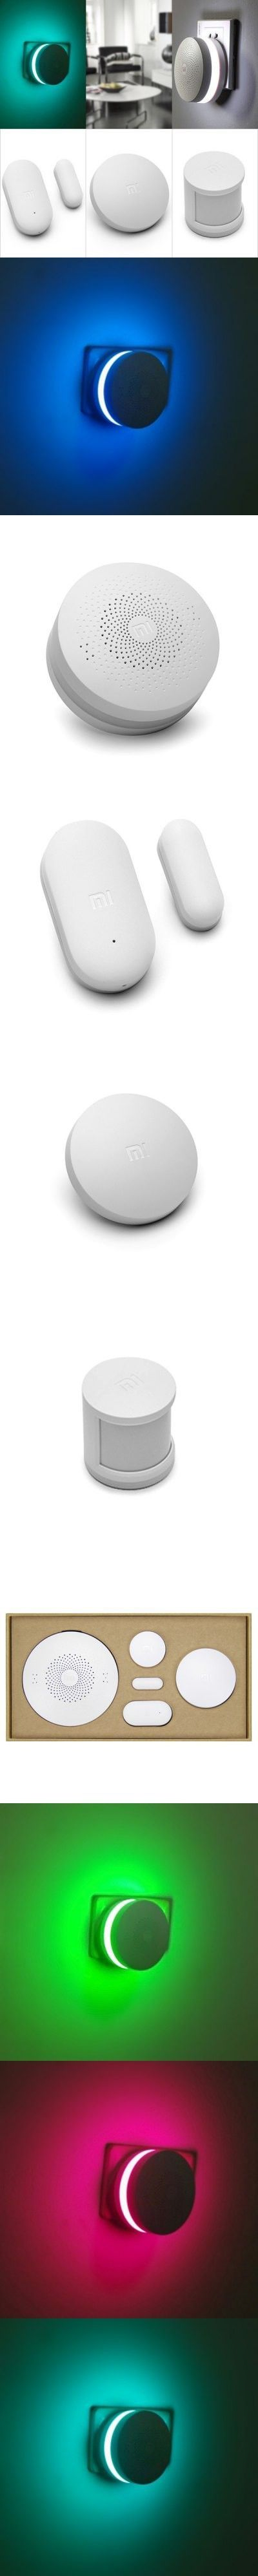 Alarm Systems | 4 in 1 Original Xiaomi Launch Sensors Suite for Smart Home Security